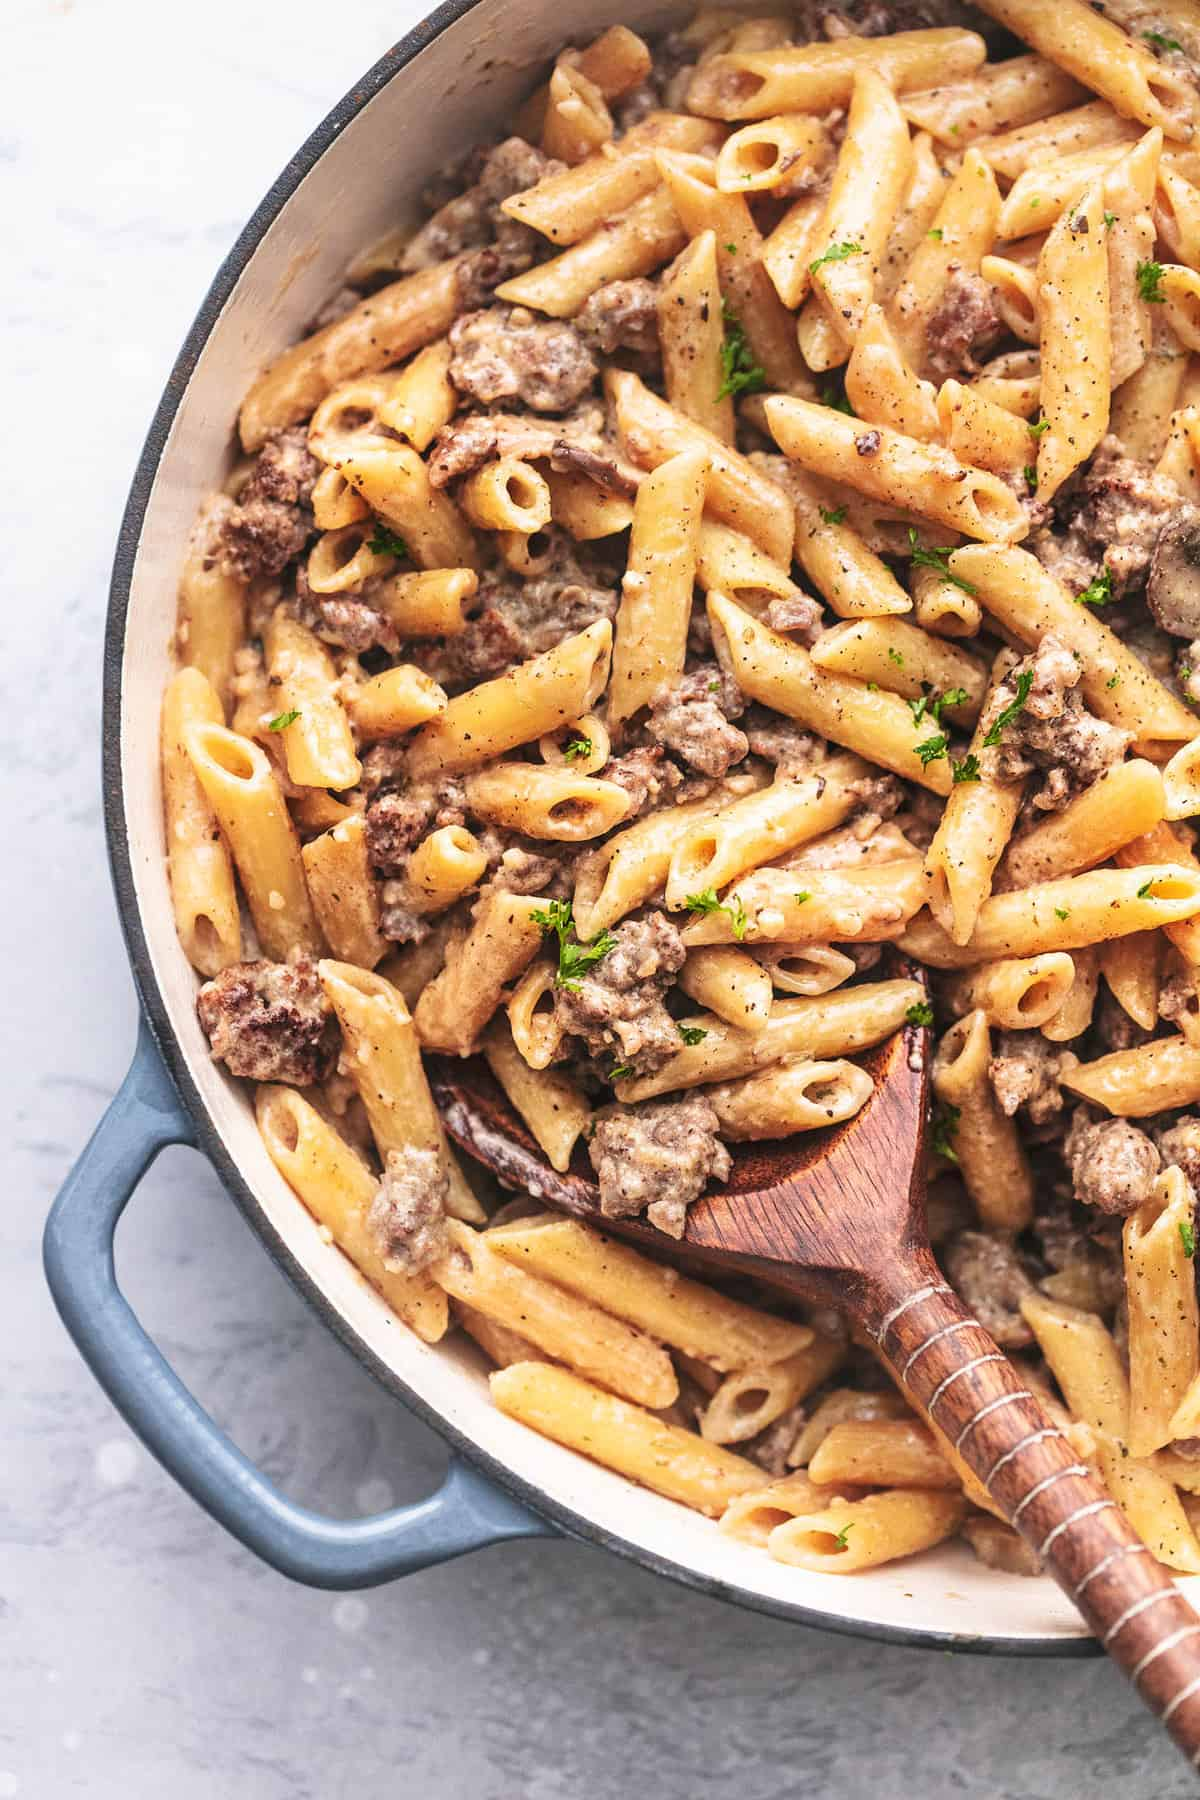 sausage and penne noodle pasta in a skillet with a wooden spoon